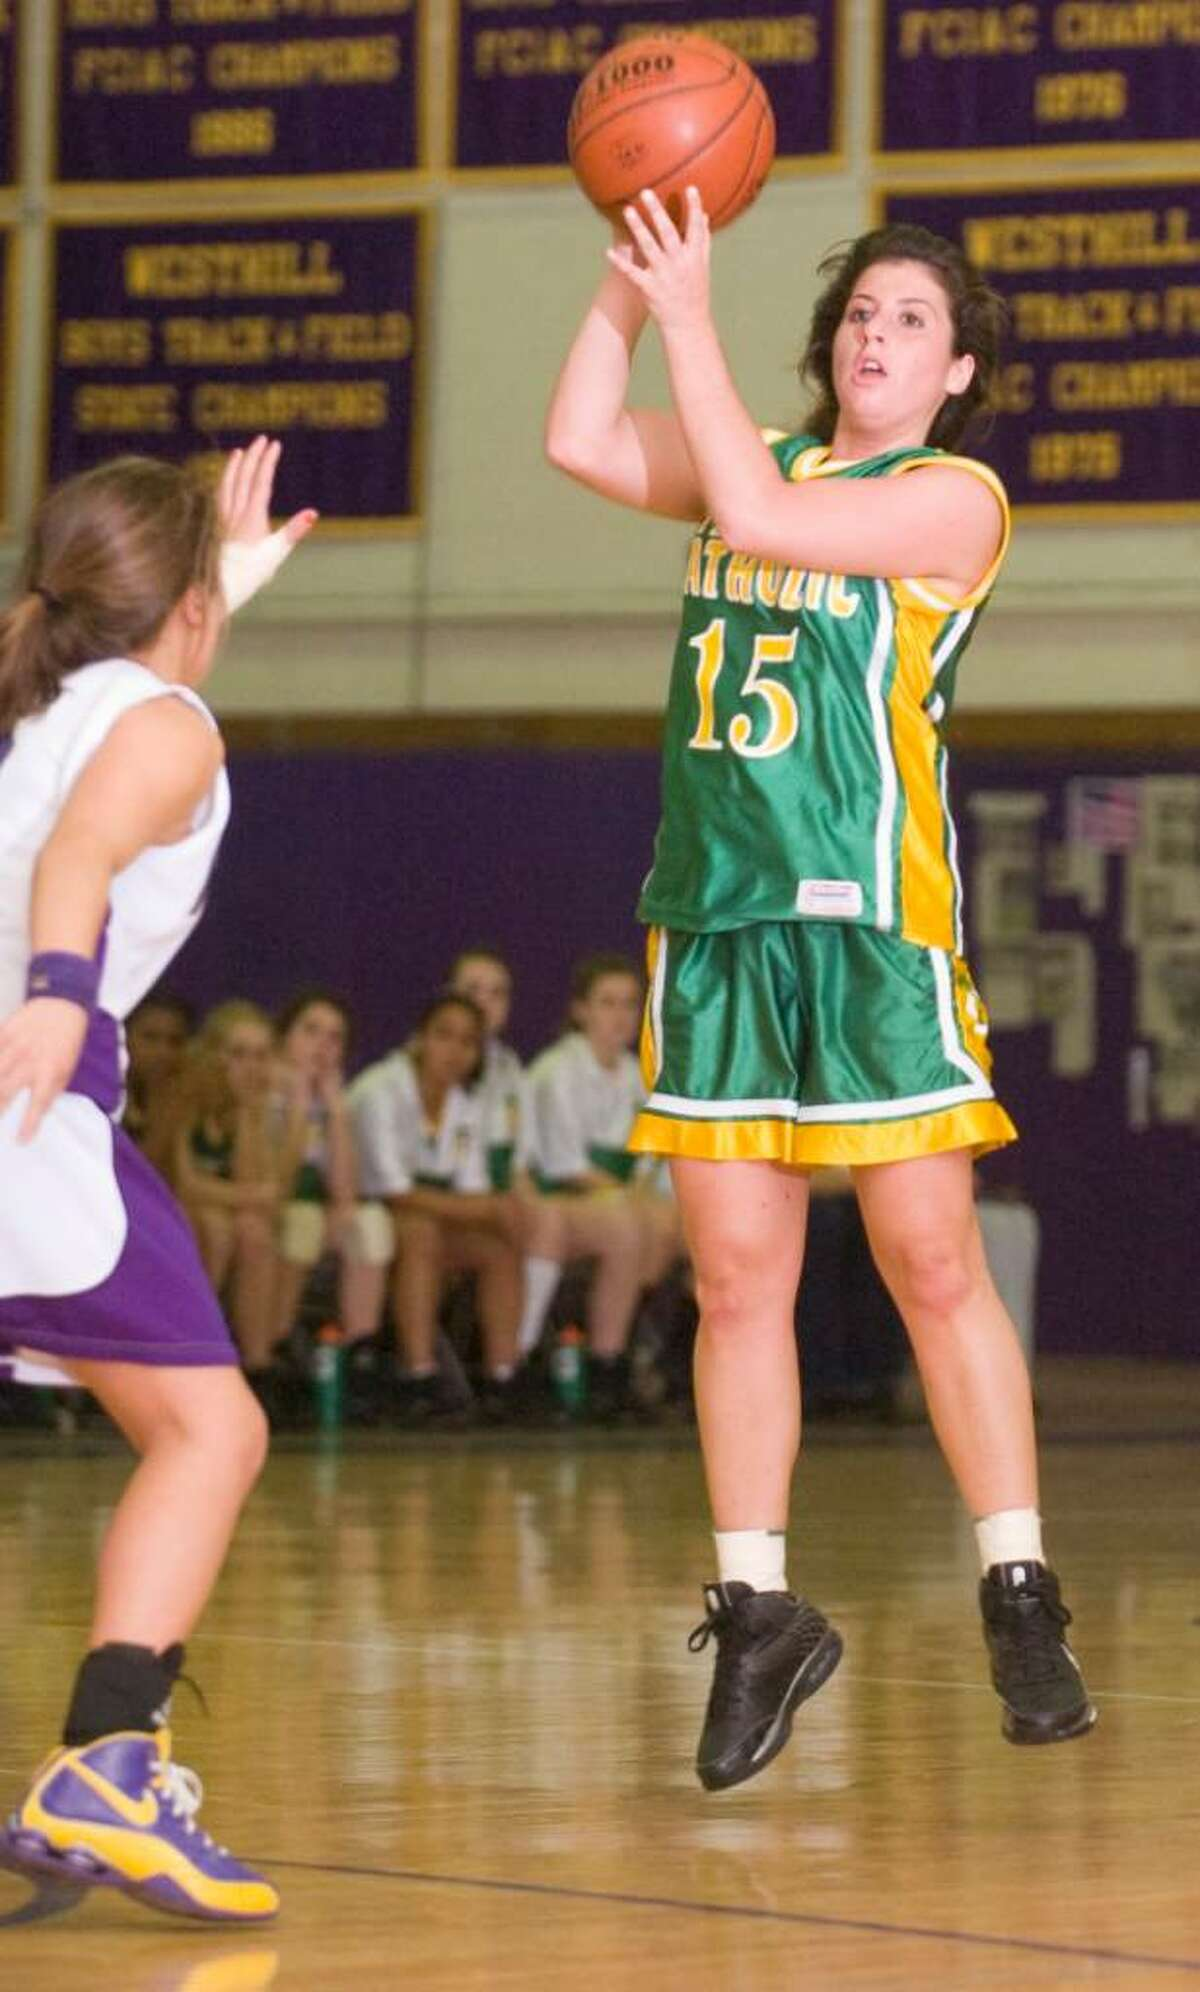 Trinity Catholic's Erin Sottosanti shoots during and FCIAC girls basketball game at Westhill High School in Stamford, Conn. on Tuesday, Jan. 12, 2010.